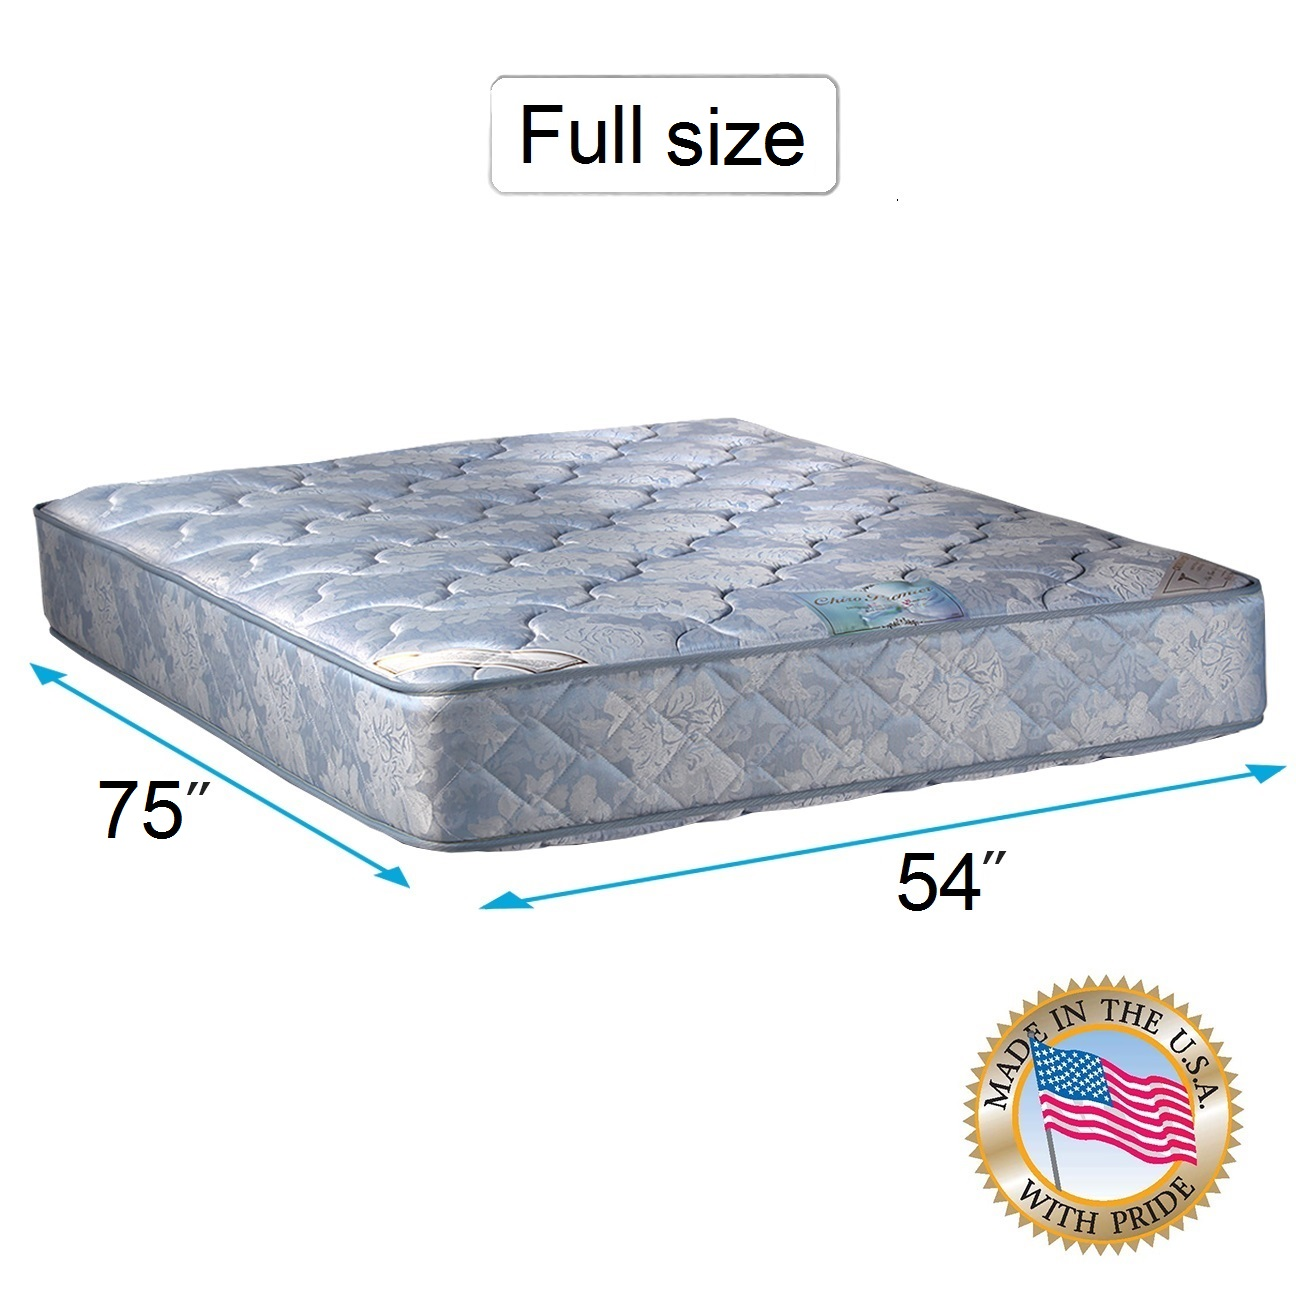 Chiro Premier Double-Sided Orthopedic (Blue Color) Full Mattress Only with Mattress Cover Protector Included - Fully Assembled, Innerspring coils, Long Lasting by Dream Solutions USA